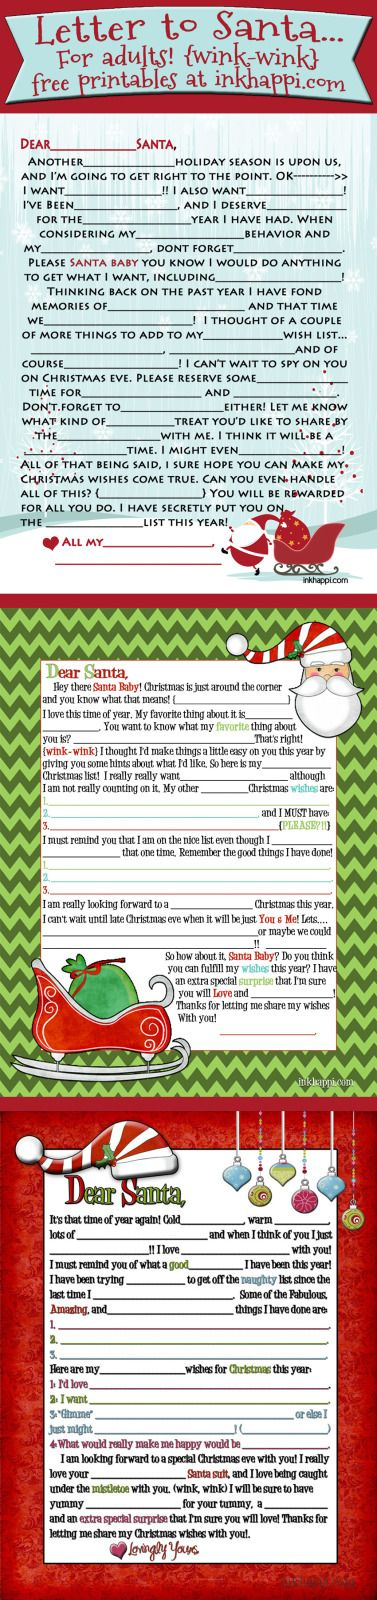 adult santa letter wink wink 2014 version is here